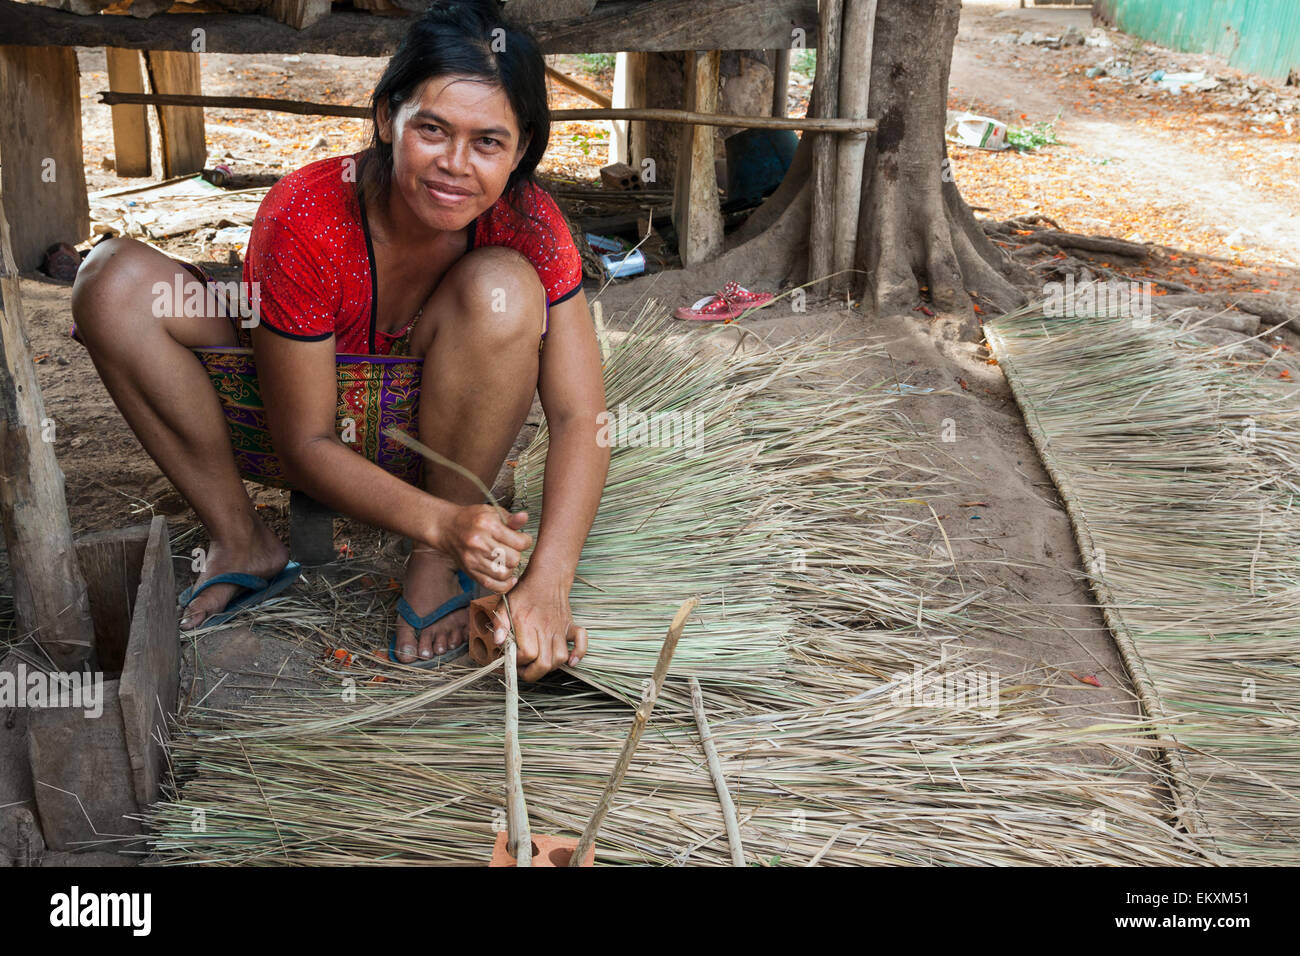 Cambodian Woman Weaving Palm Fronds To Make A House Roof